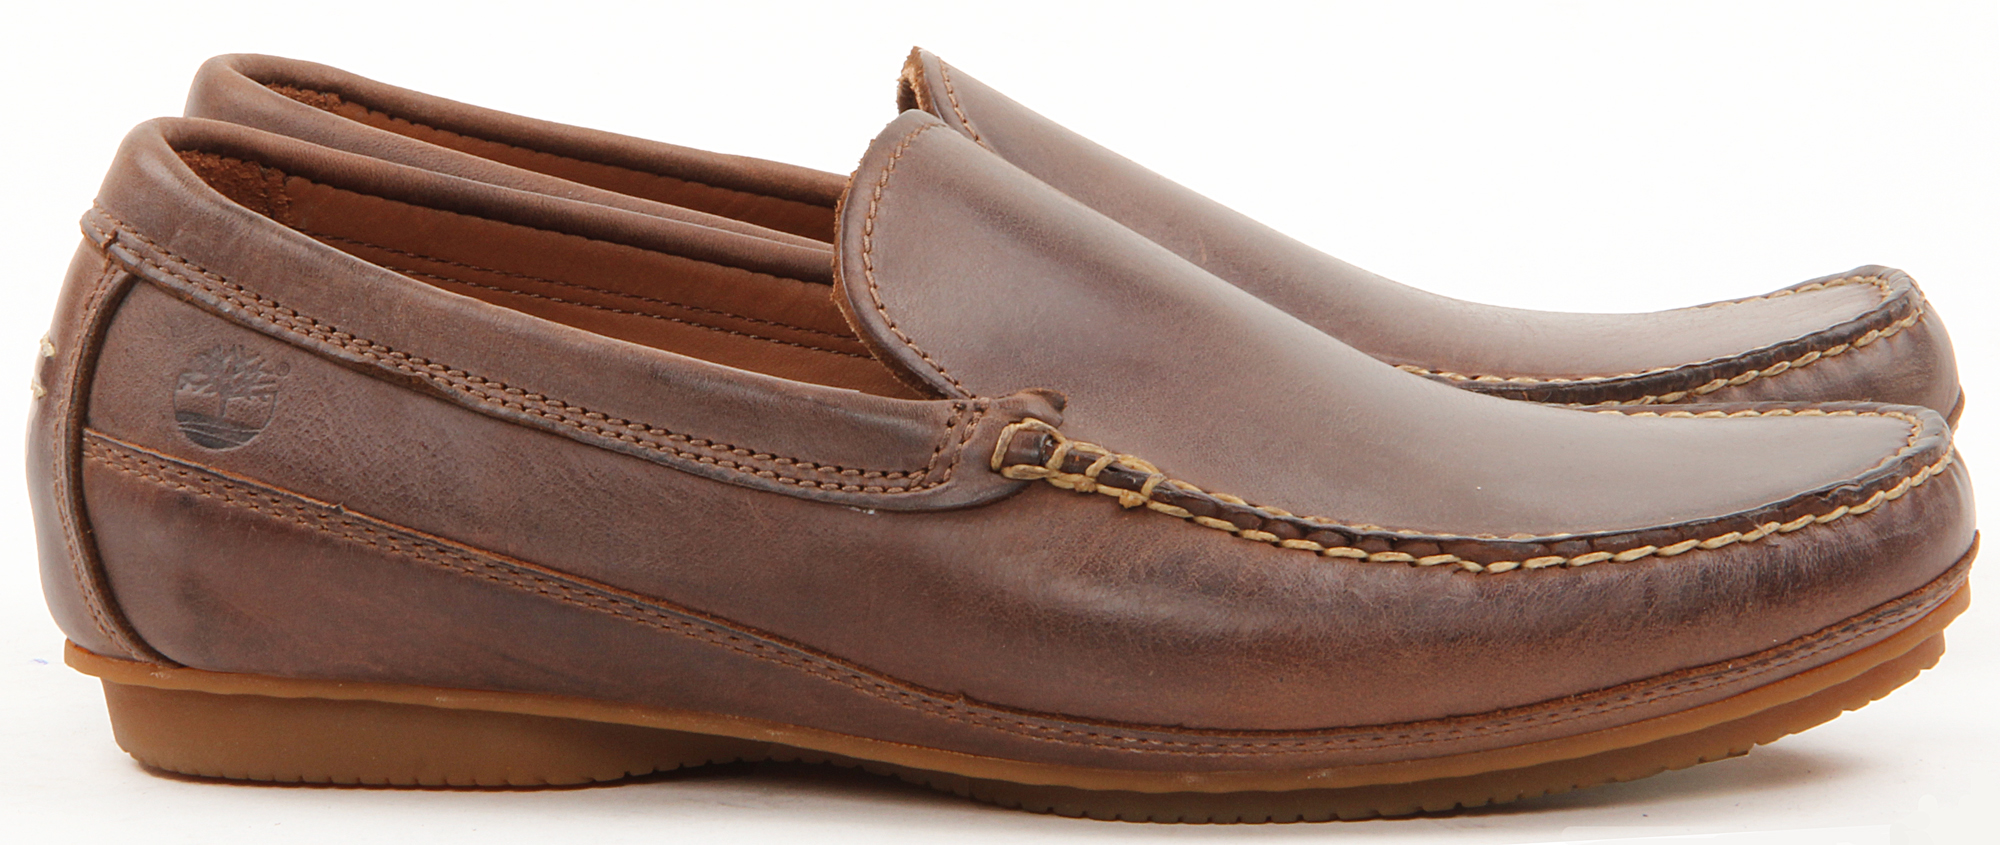 Mens Tan Timberland Boat Shoes